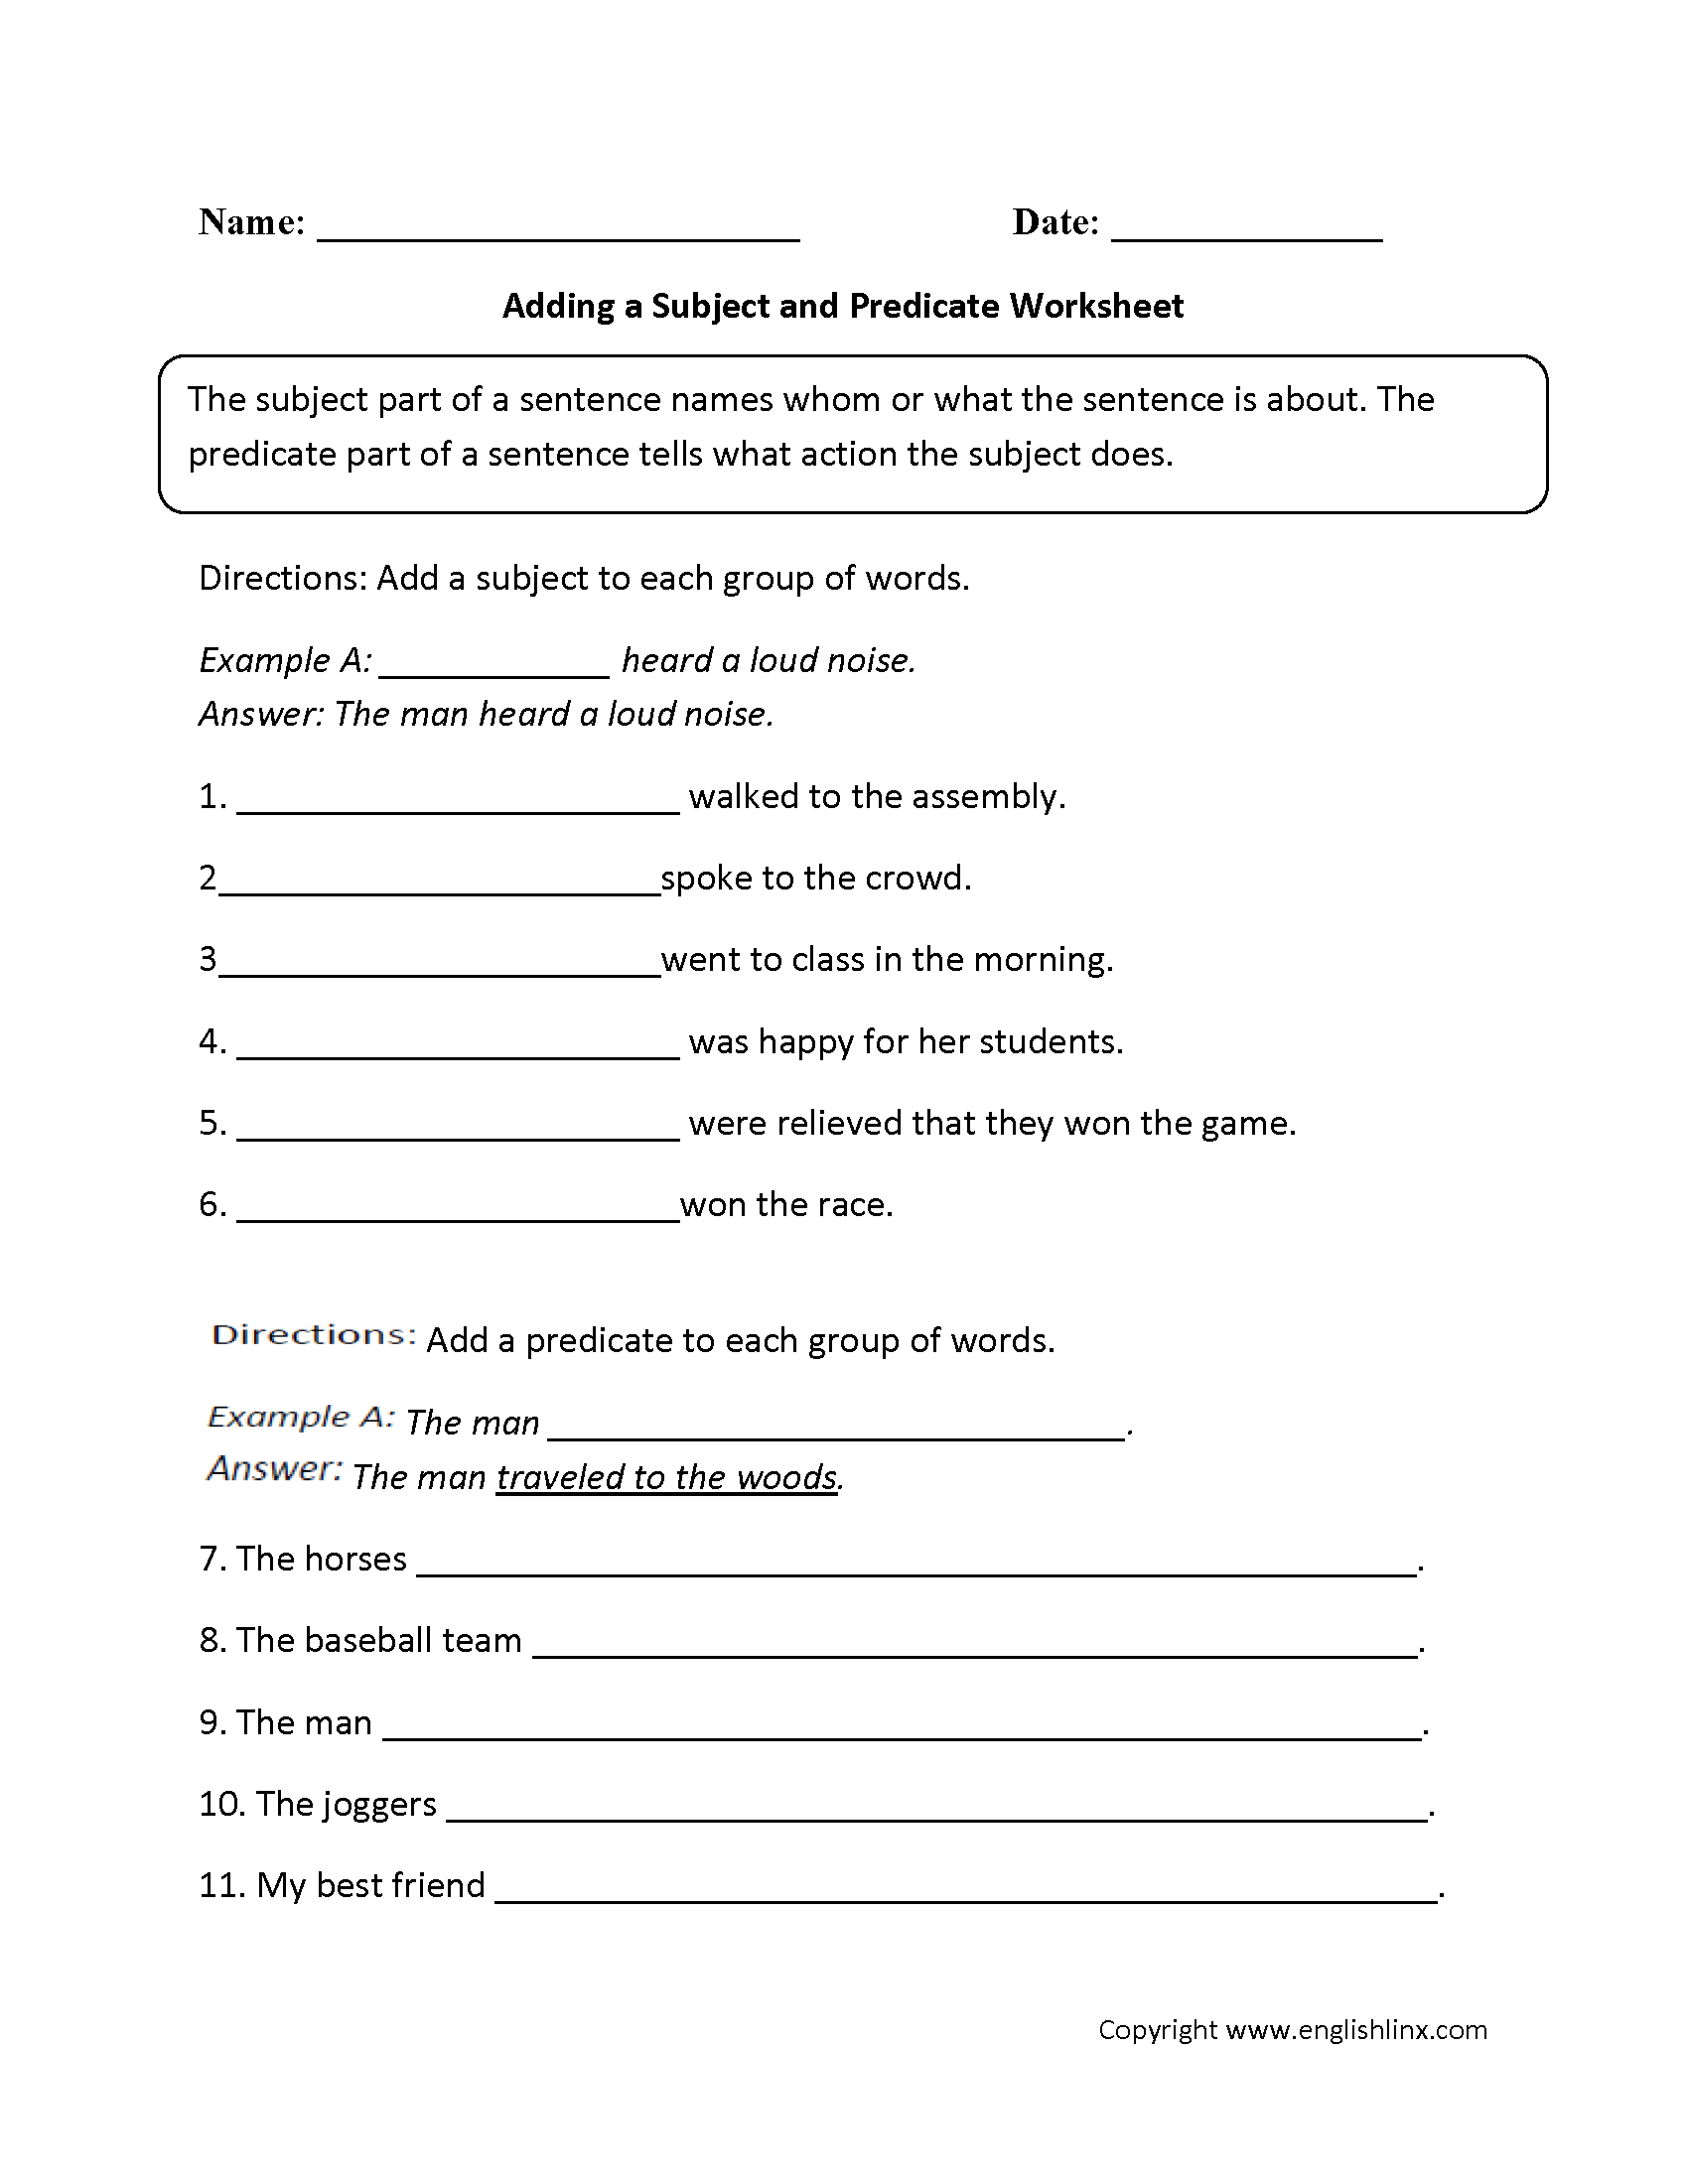 Worksheets 3rd Grade Punctuation Worksheets adding a subject and predicate worksheet englishlinx com board these worksheets are great for working with use worksheet